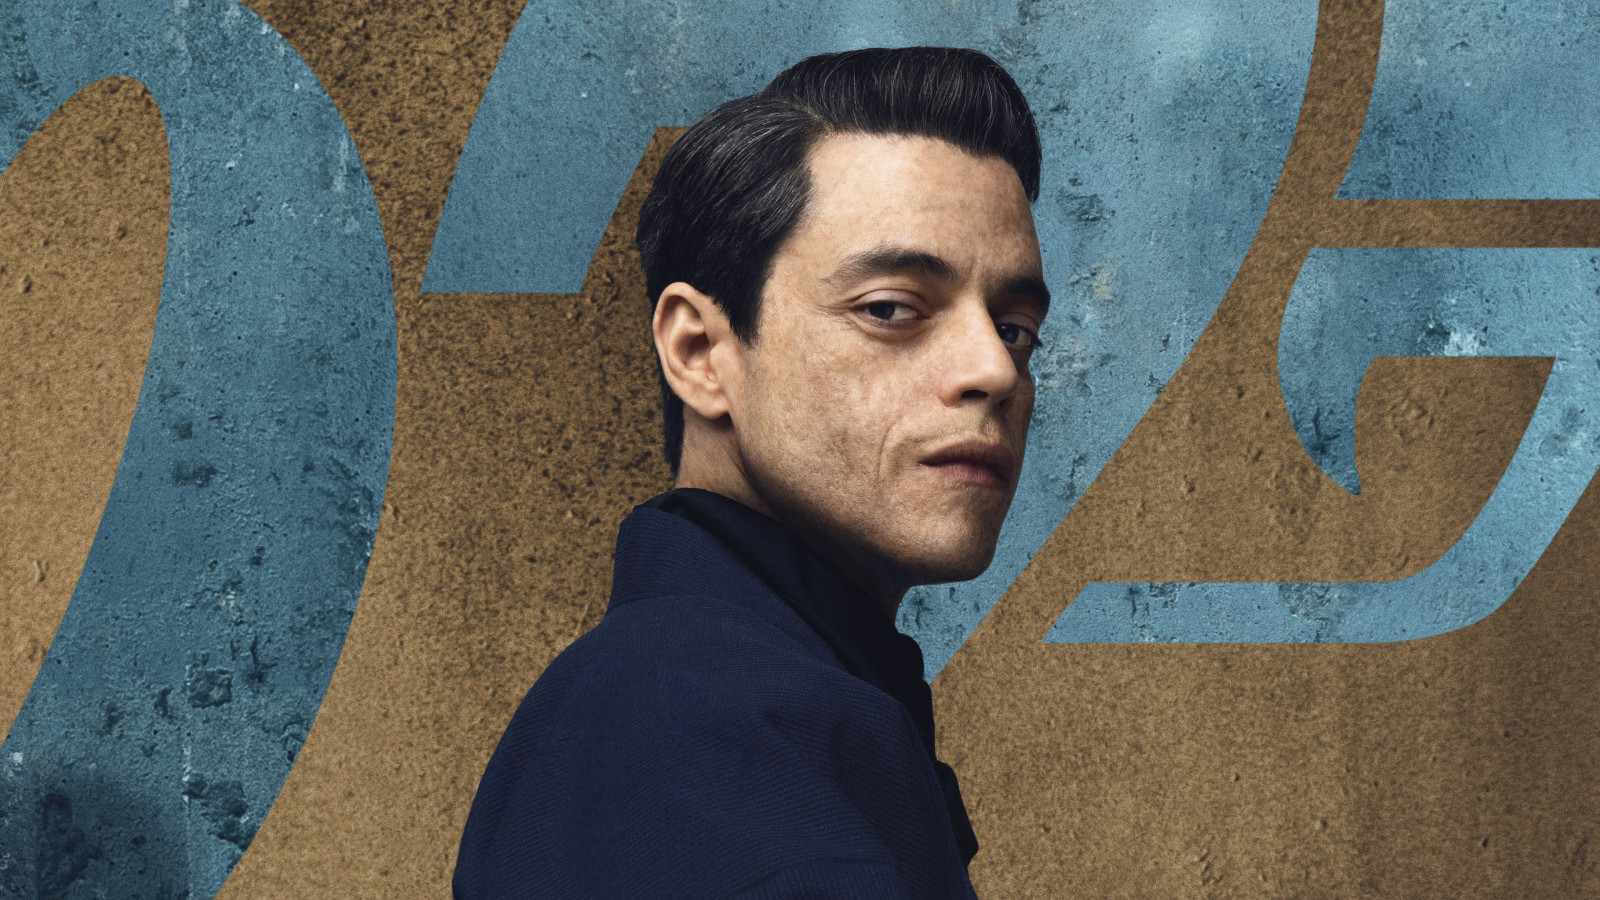 Rami Malek in No Time to Die 007 wallpaper 1600x900